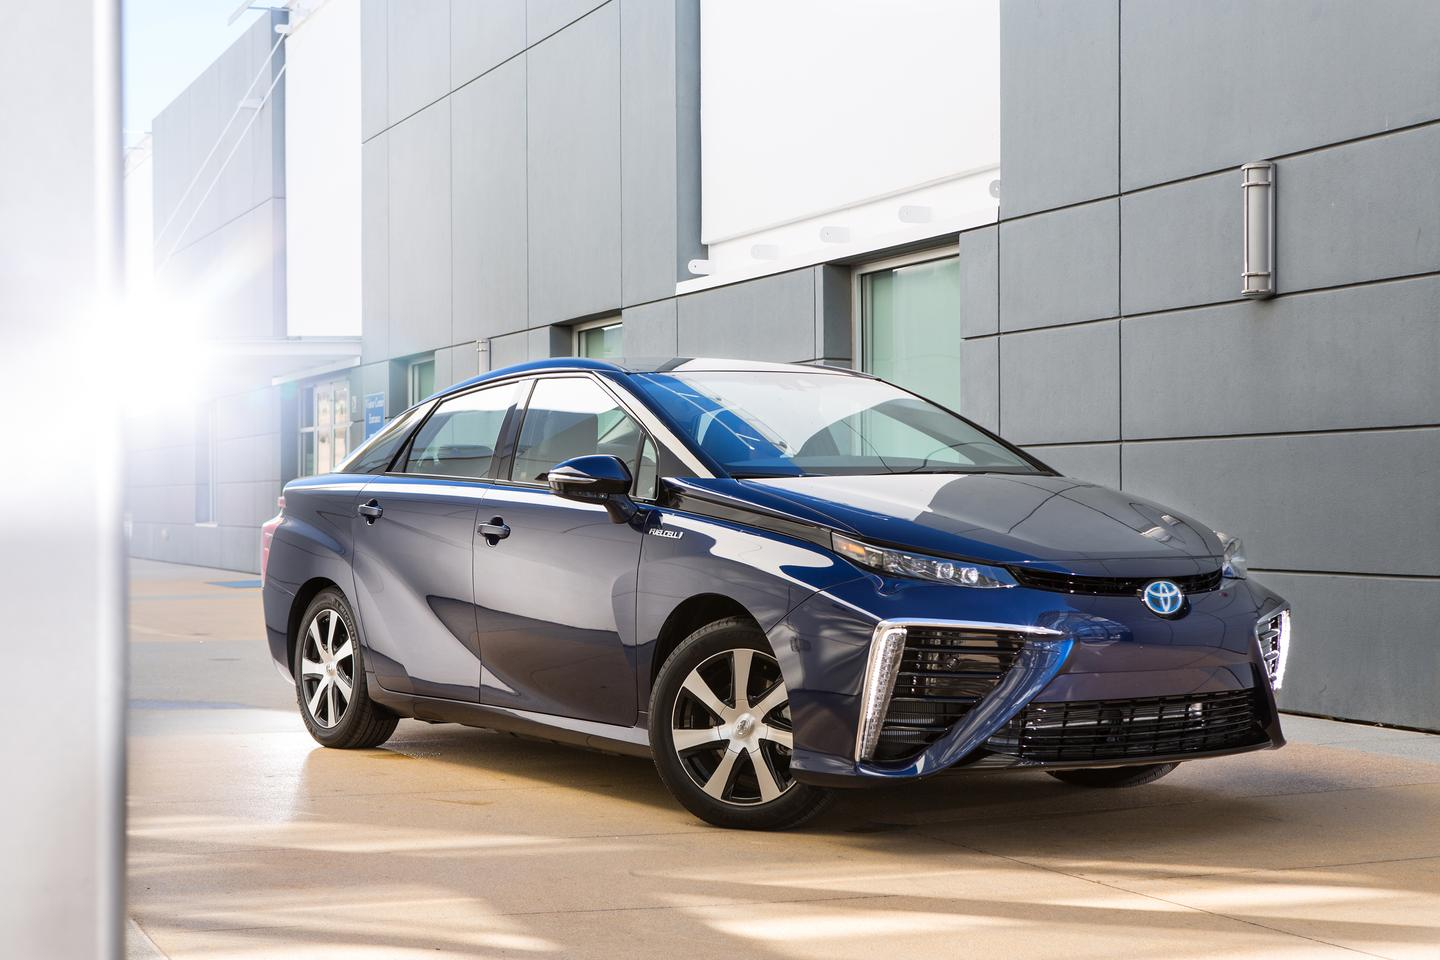 Toyota's Mirai is the result of 20 years of R&D